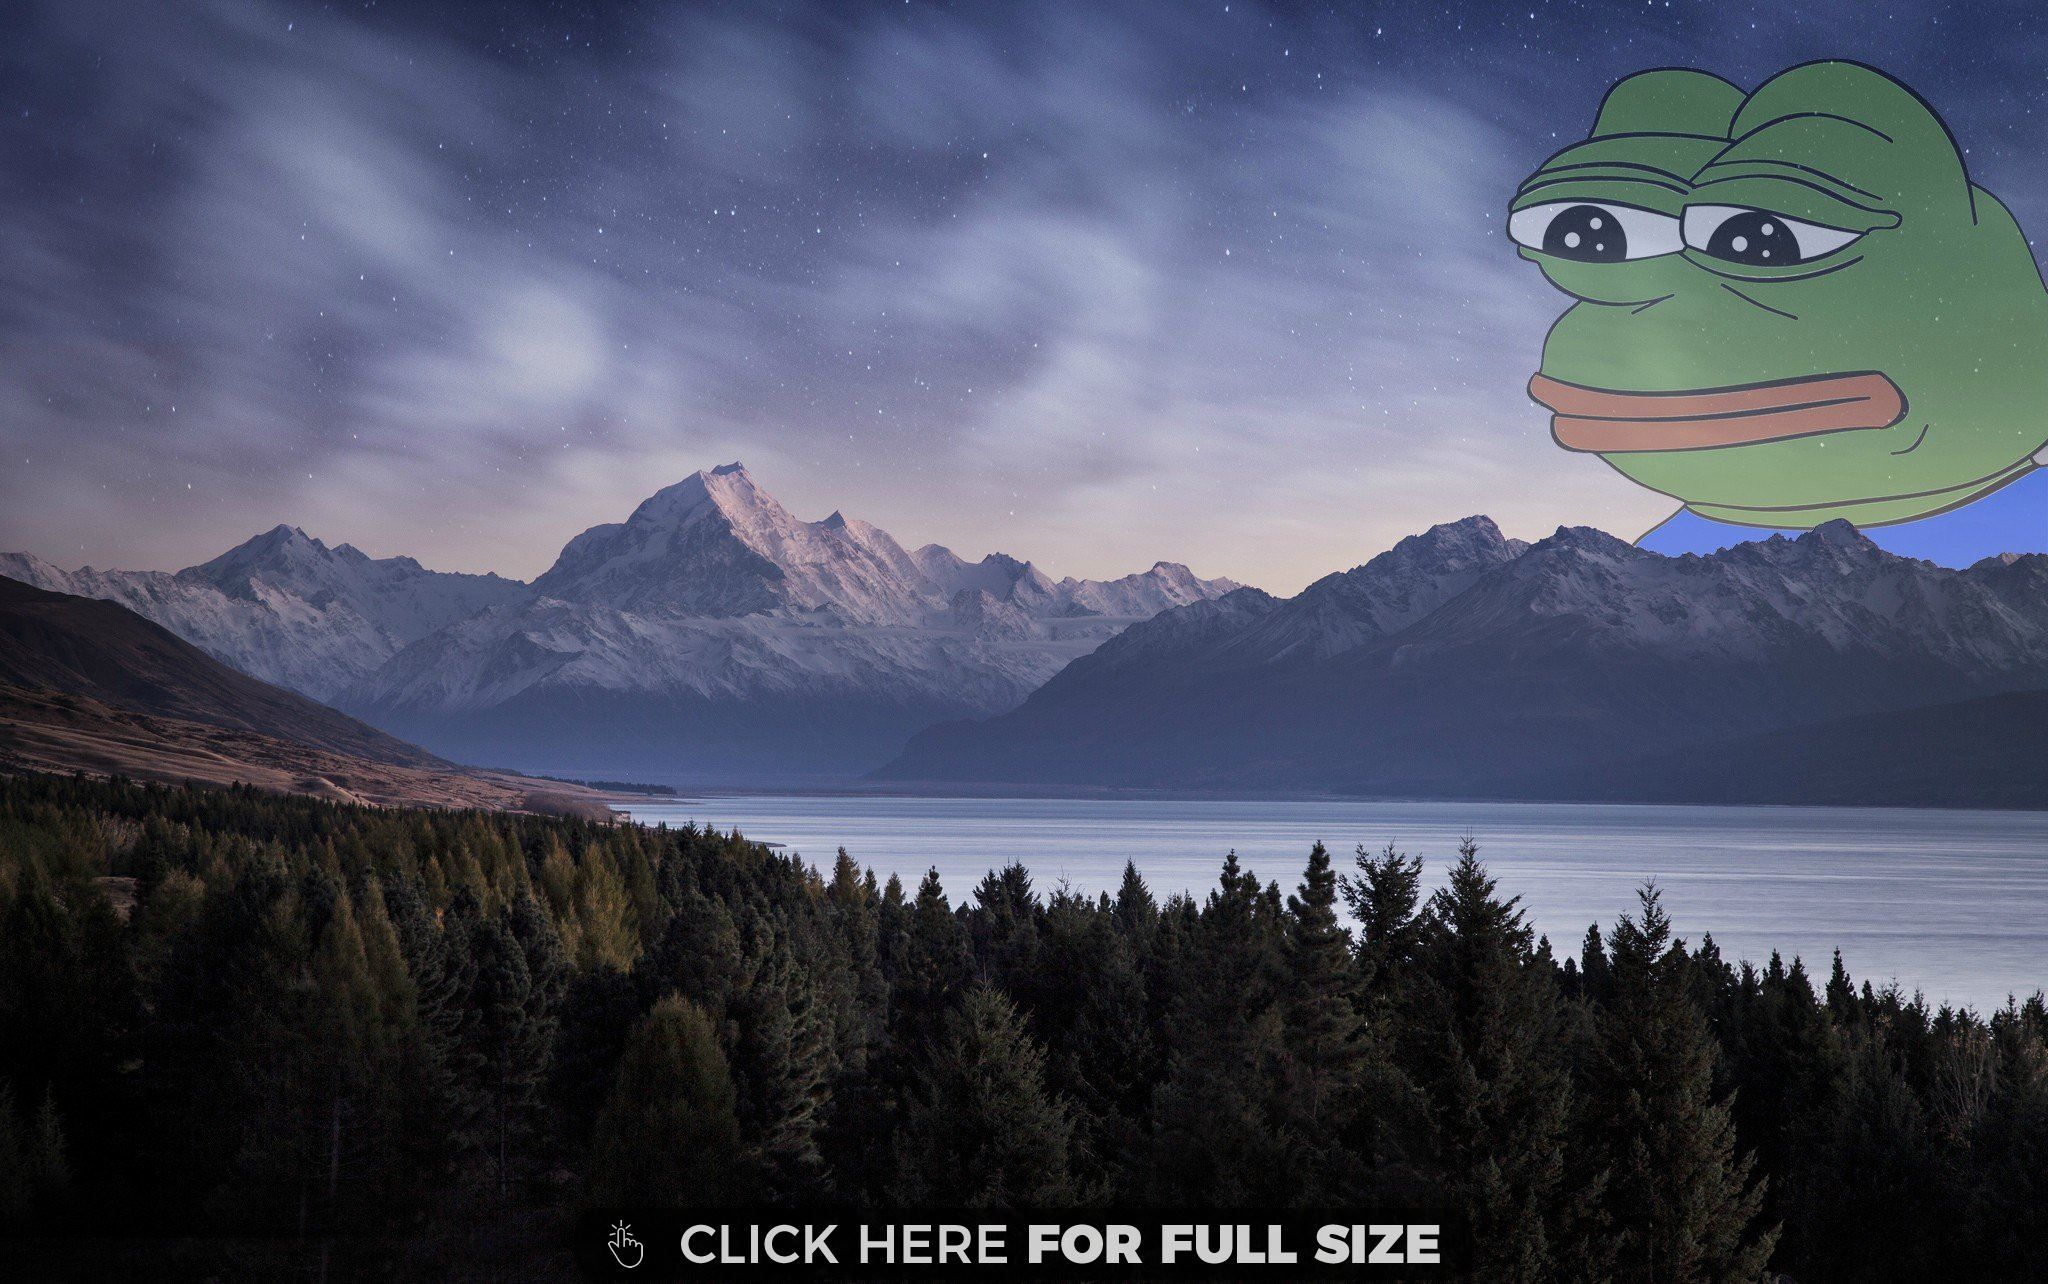 Nightfall In The Rocky Mountains Wallpaper Frog Wallpaper Wallpaper Backgrounds Meme Background